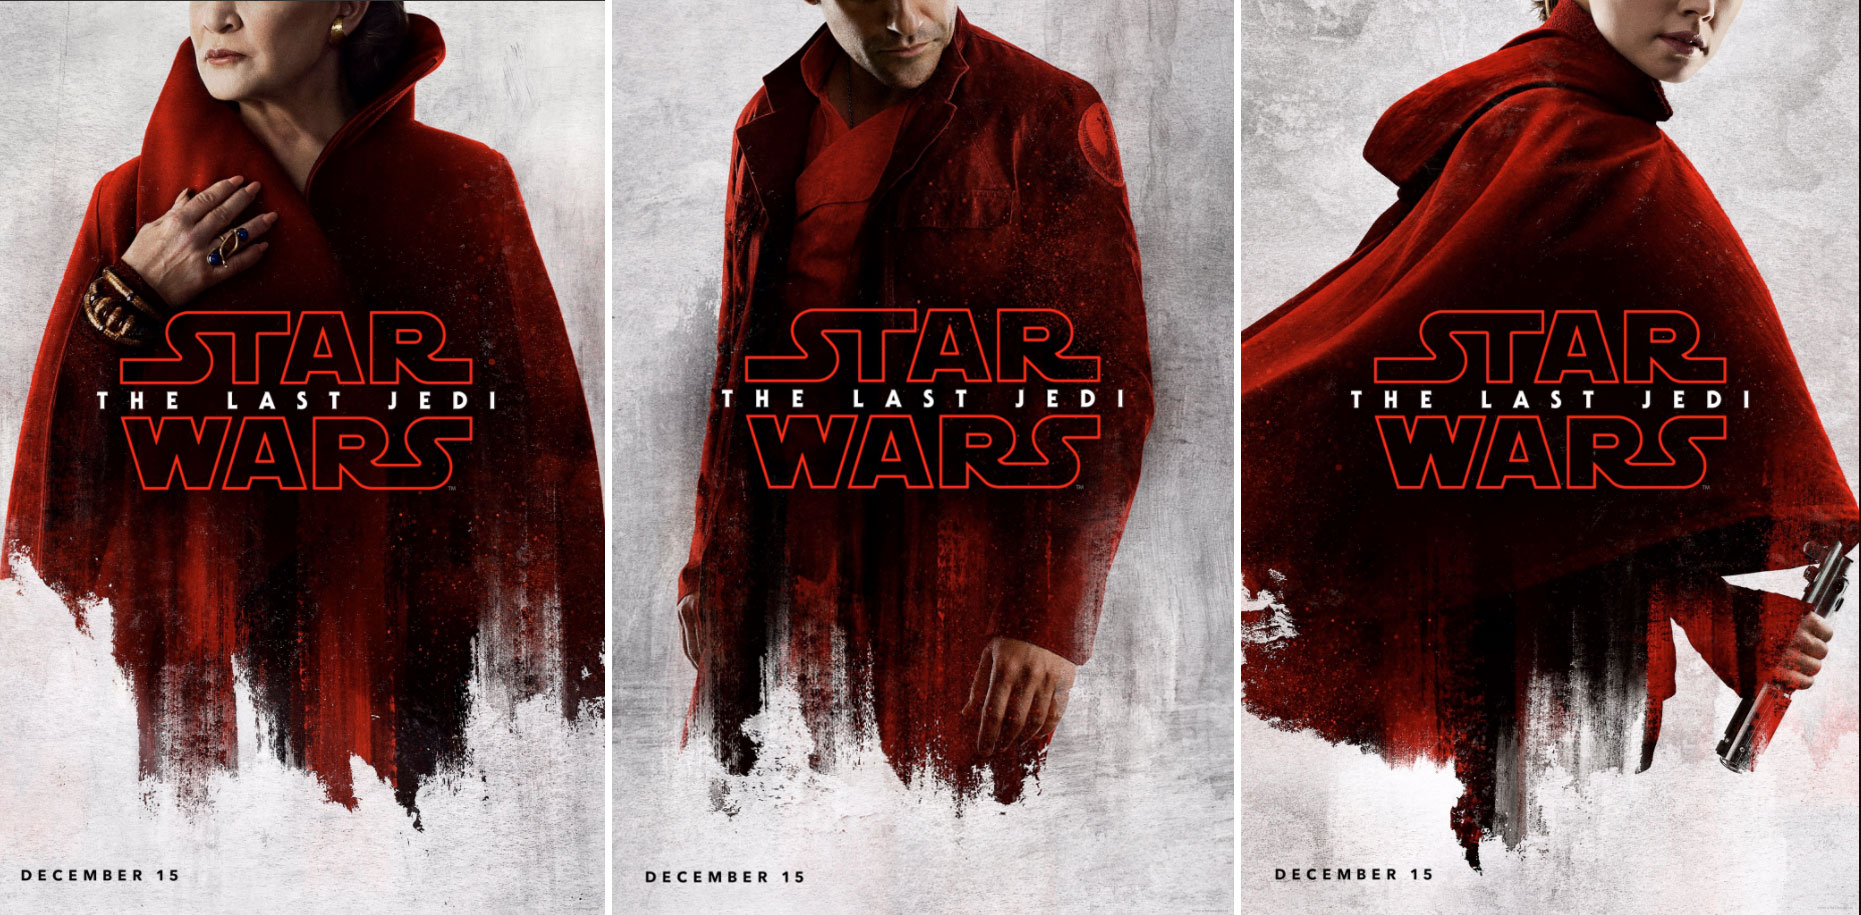 """General Leia, Poe Dameron and Rey are shown in """"The Last Jedi"""" promotional posters."""